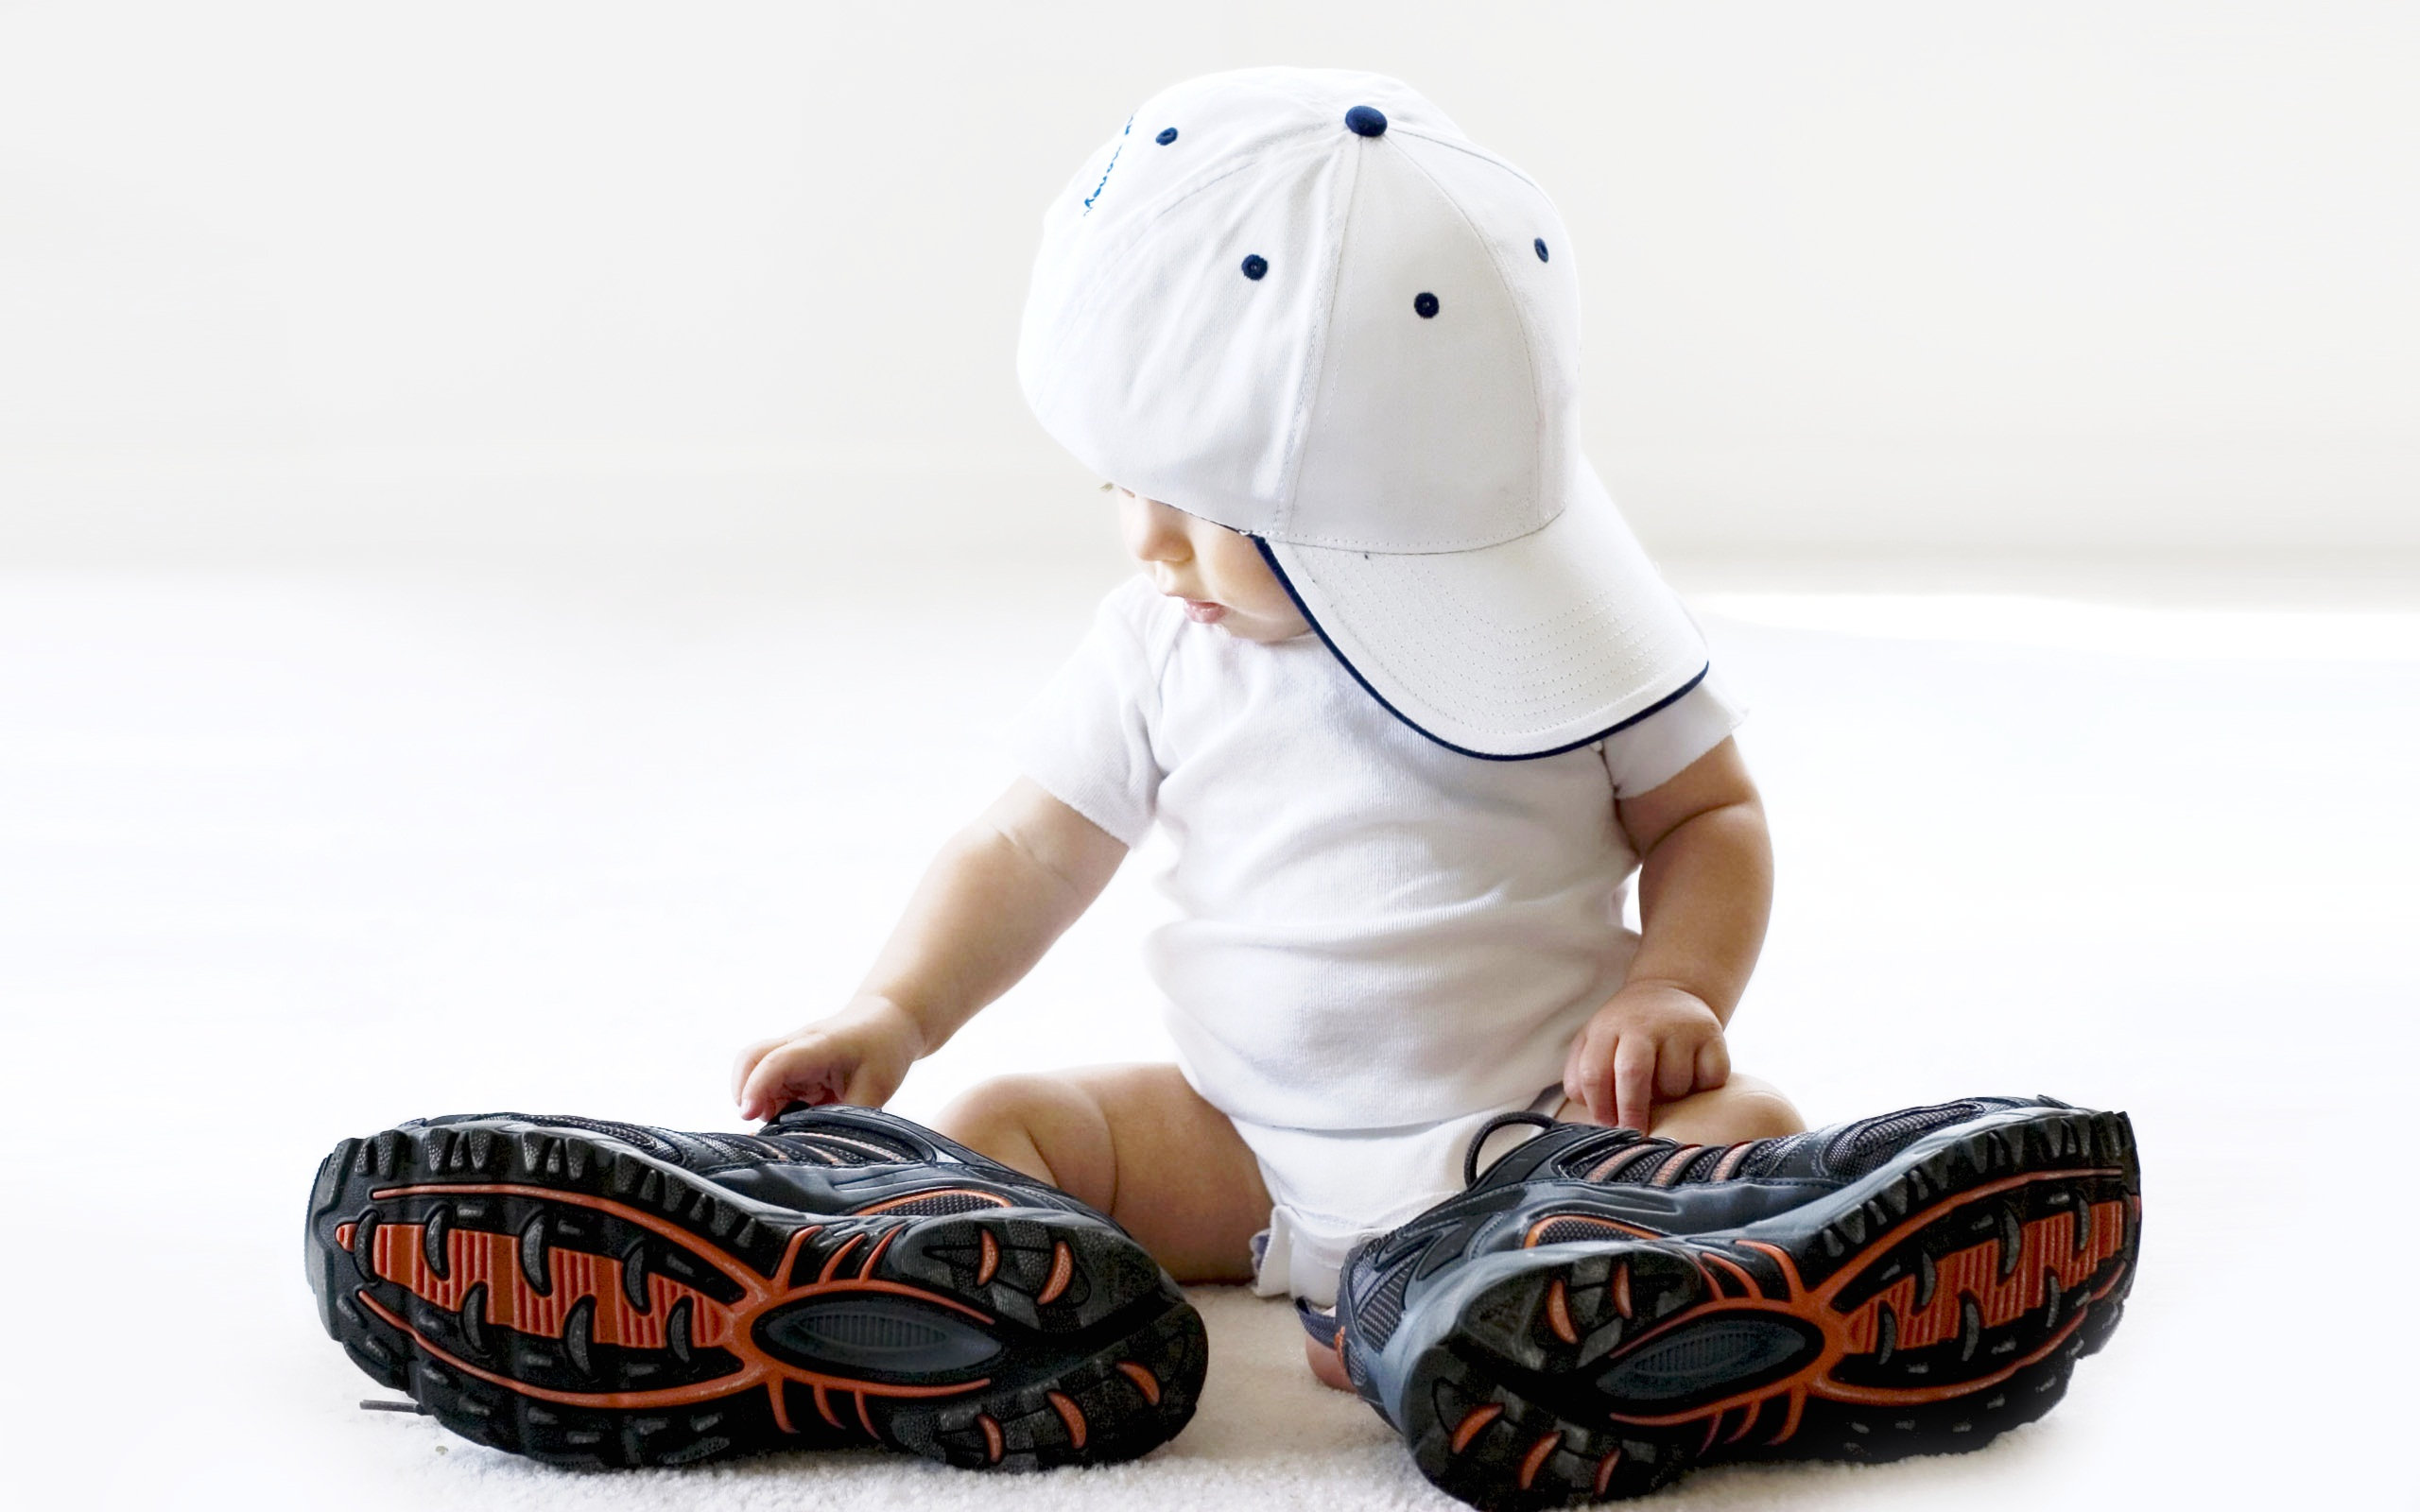 Cute Baby Boy Wallpapers HD Wallpapers 2560x1600